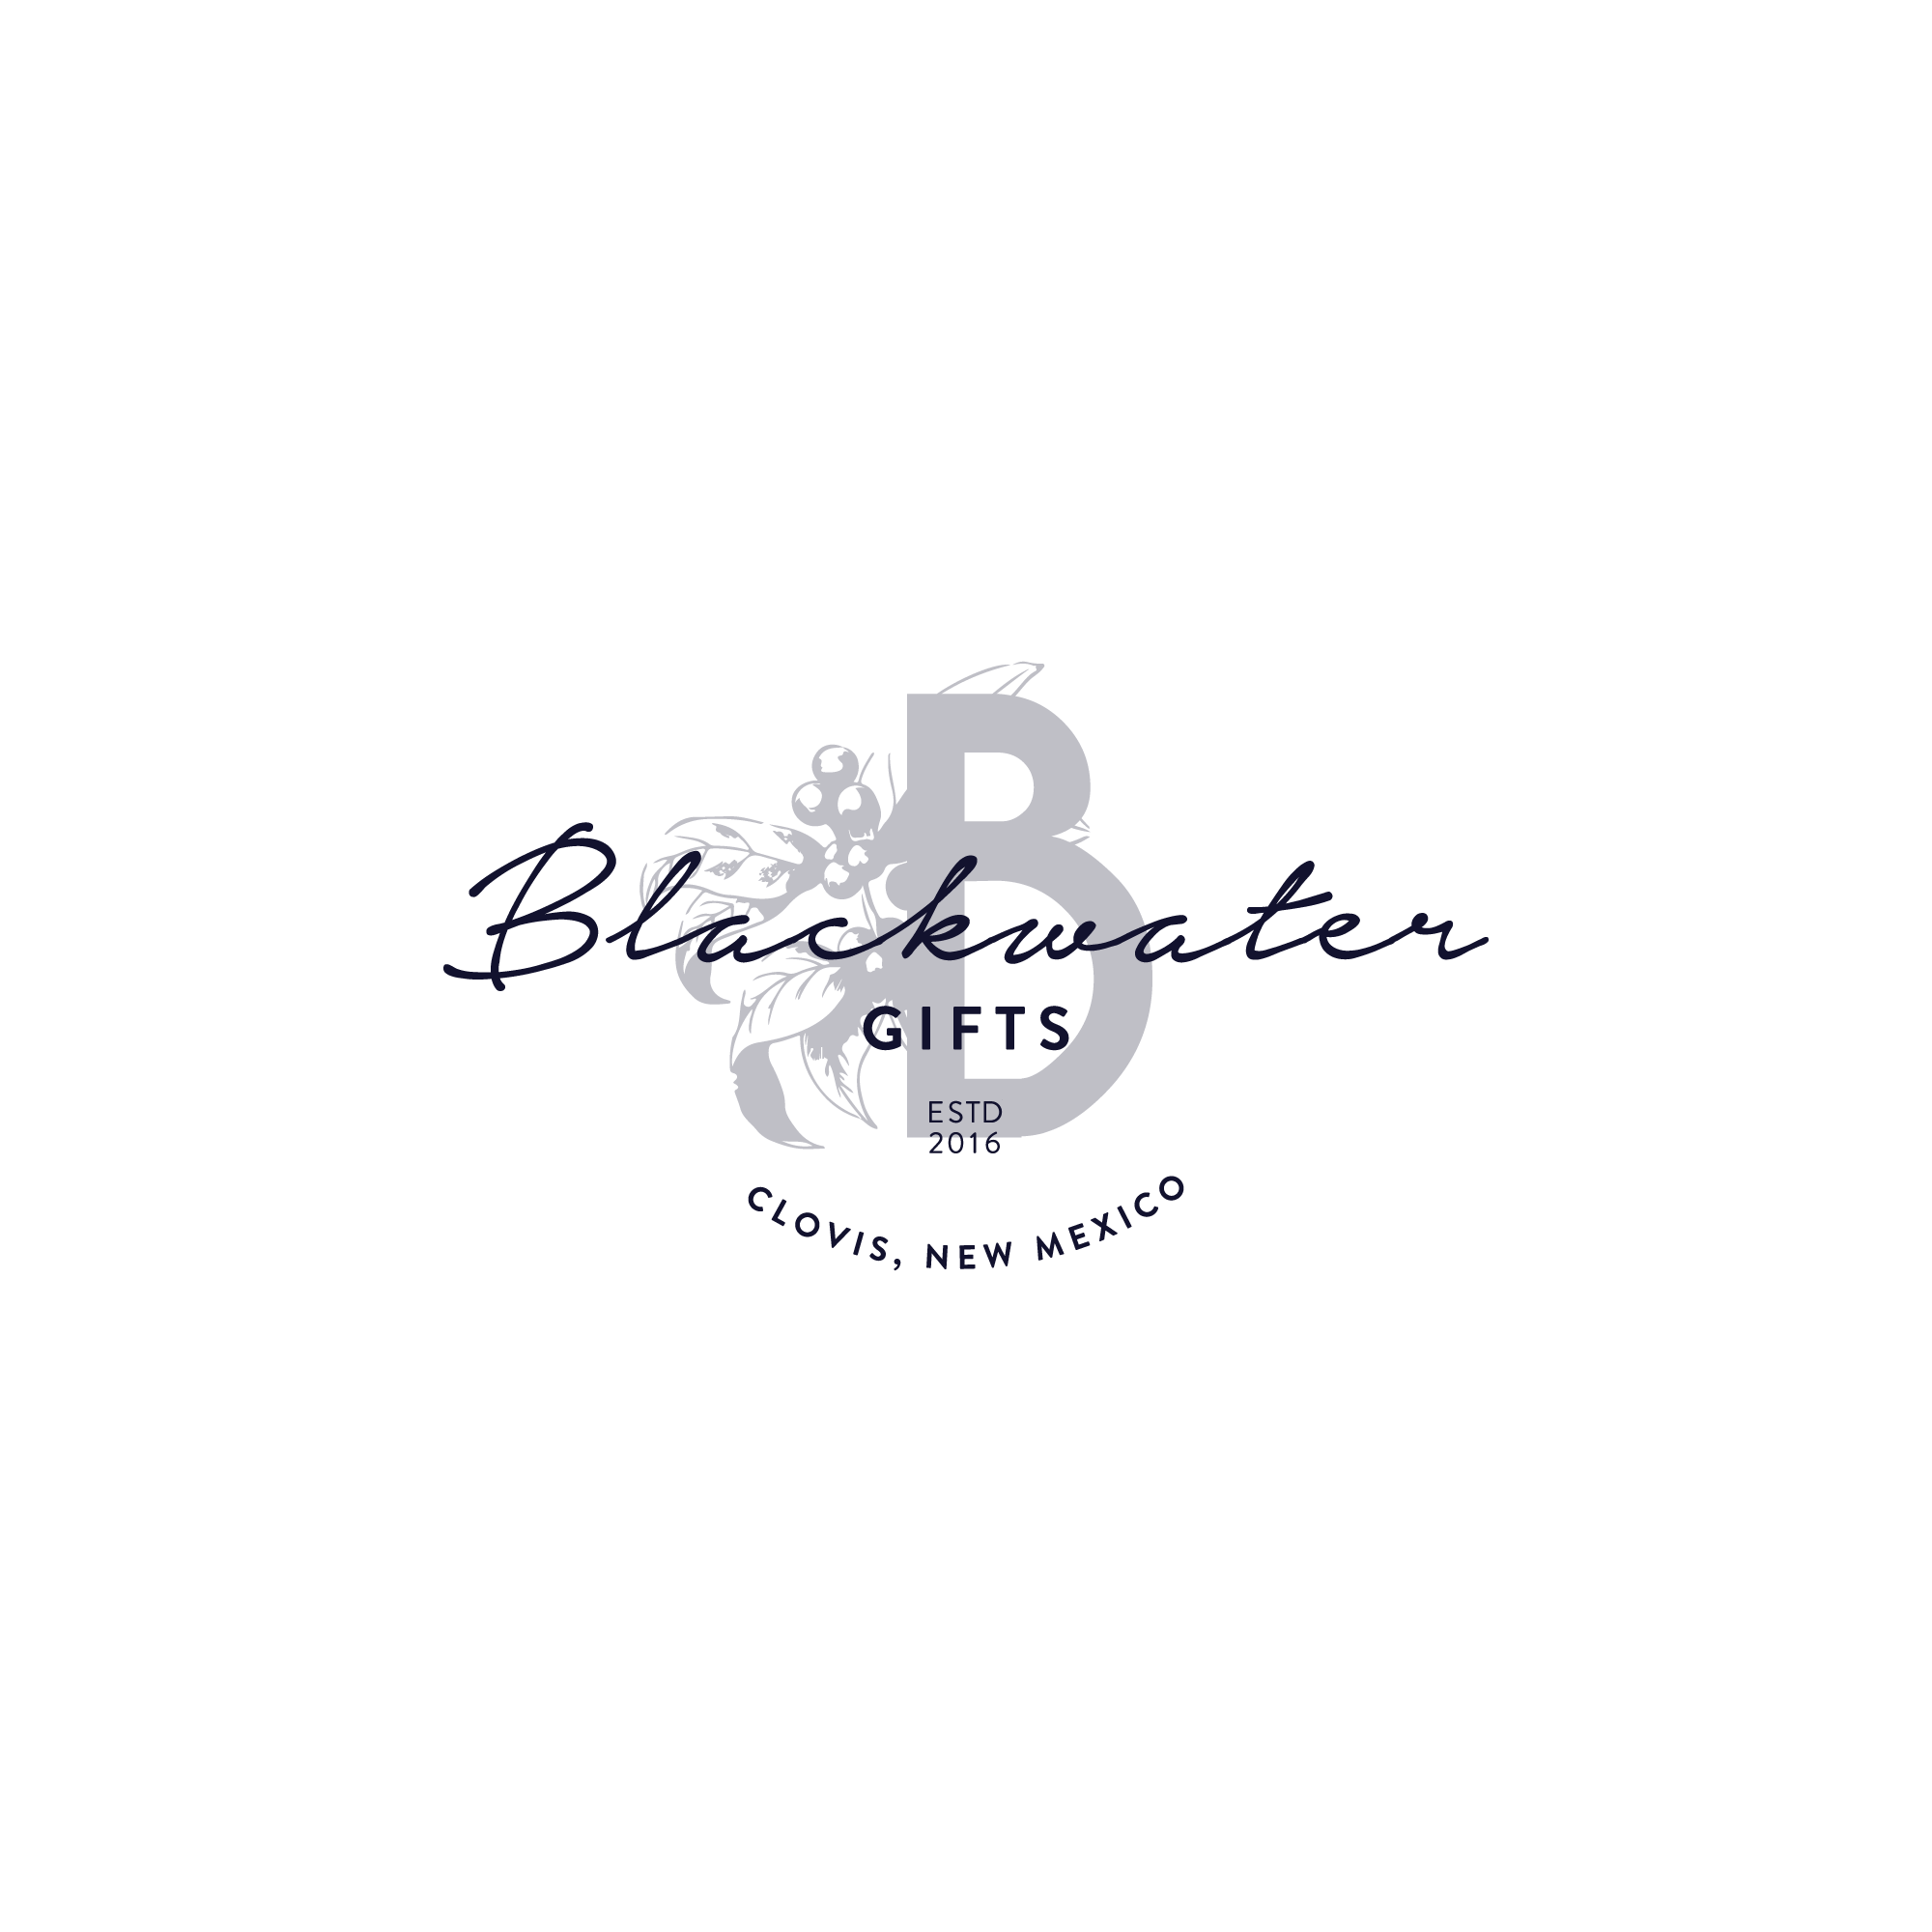 Blackwater Coffee Company